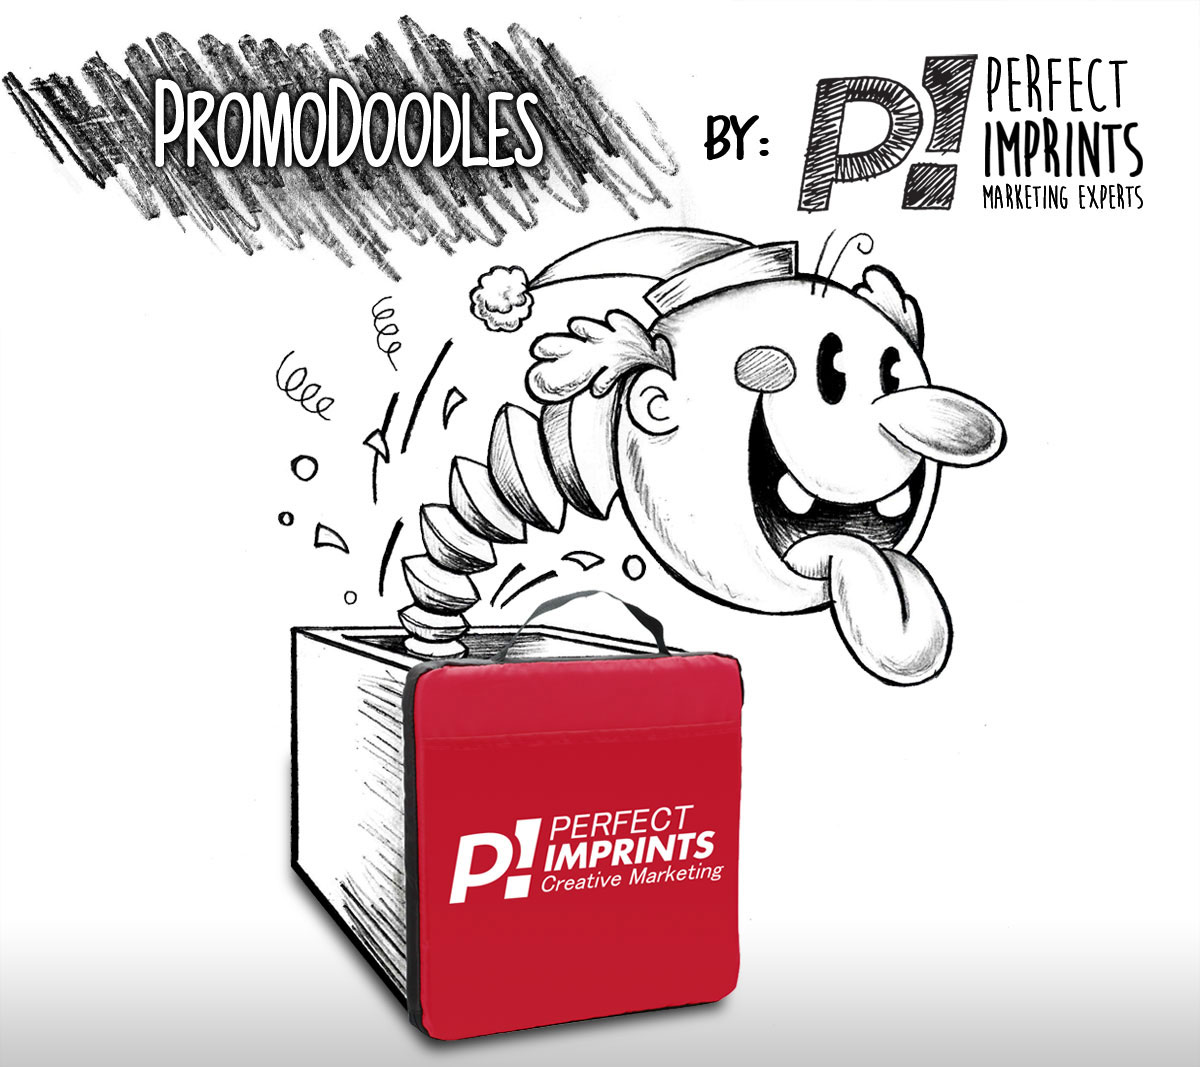 PromoDoodles by Perfect Imprints - Jack-in-the-Box - Stadium Seat Cushion